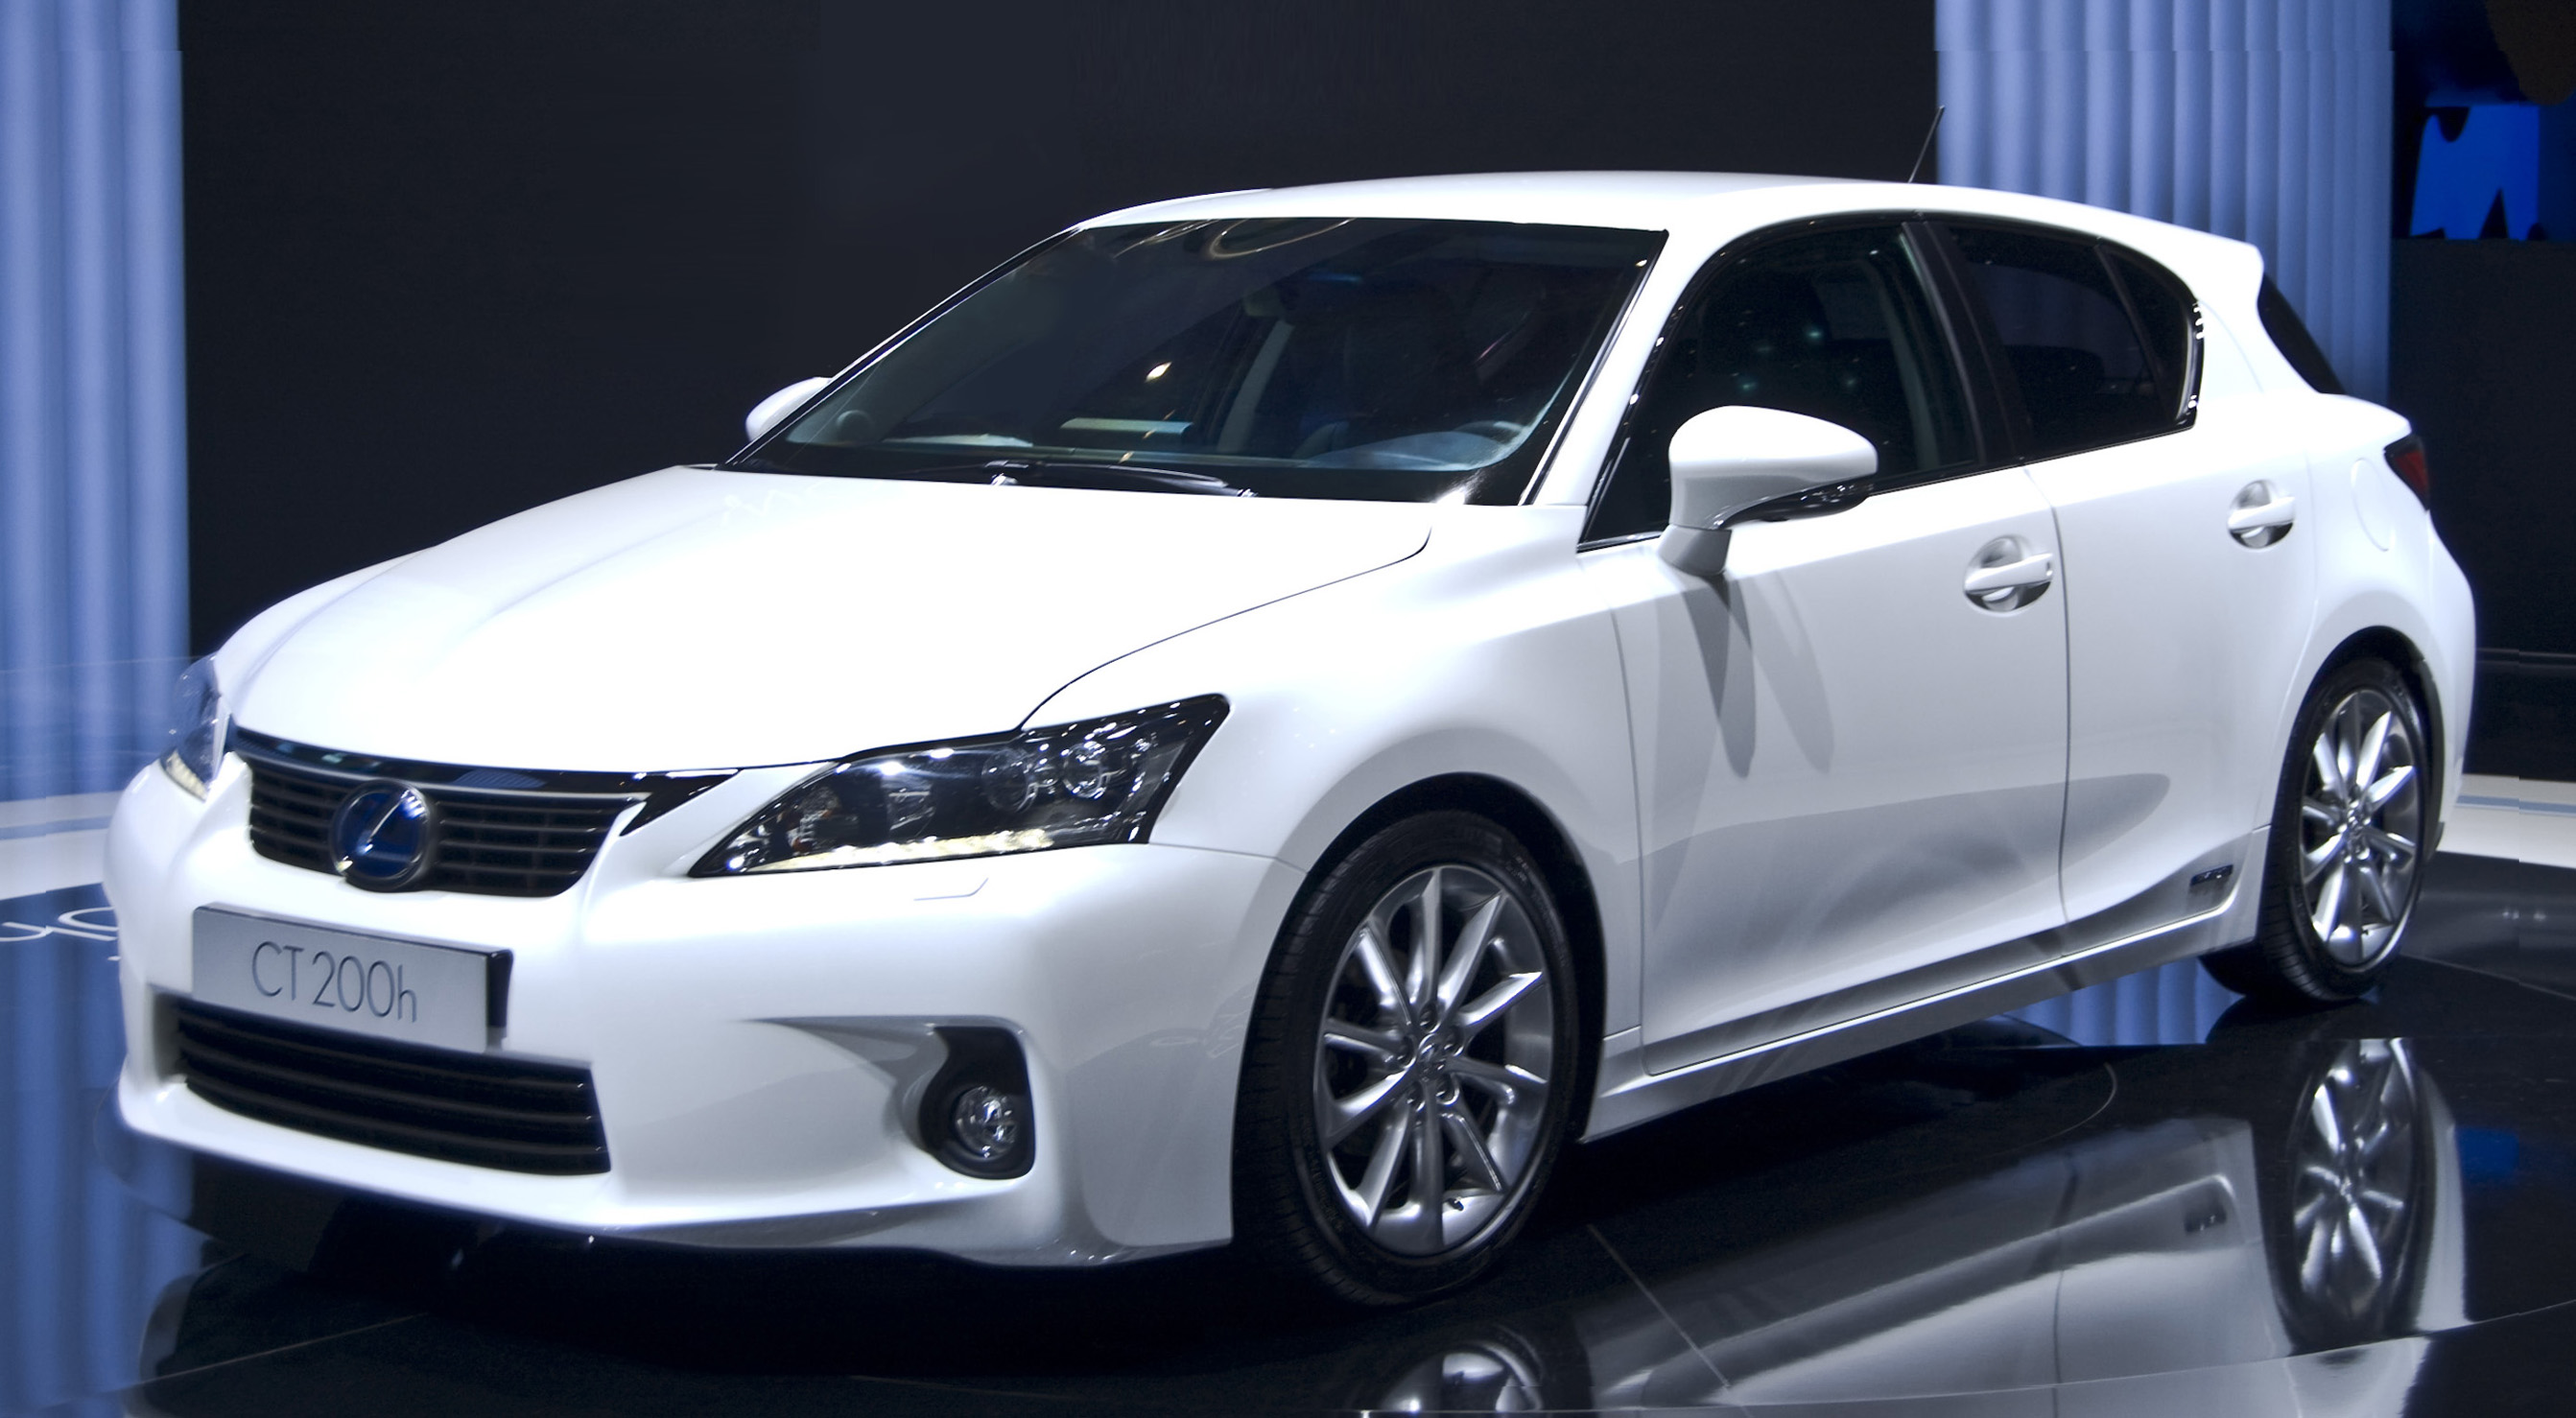 Is Ct200h A Real Lexus Or Just Pr